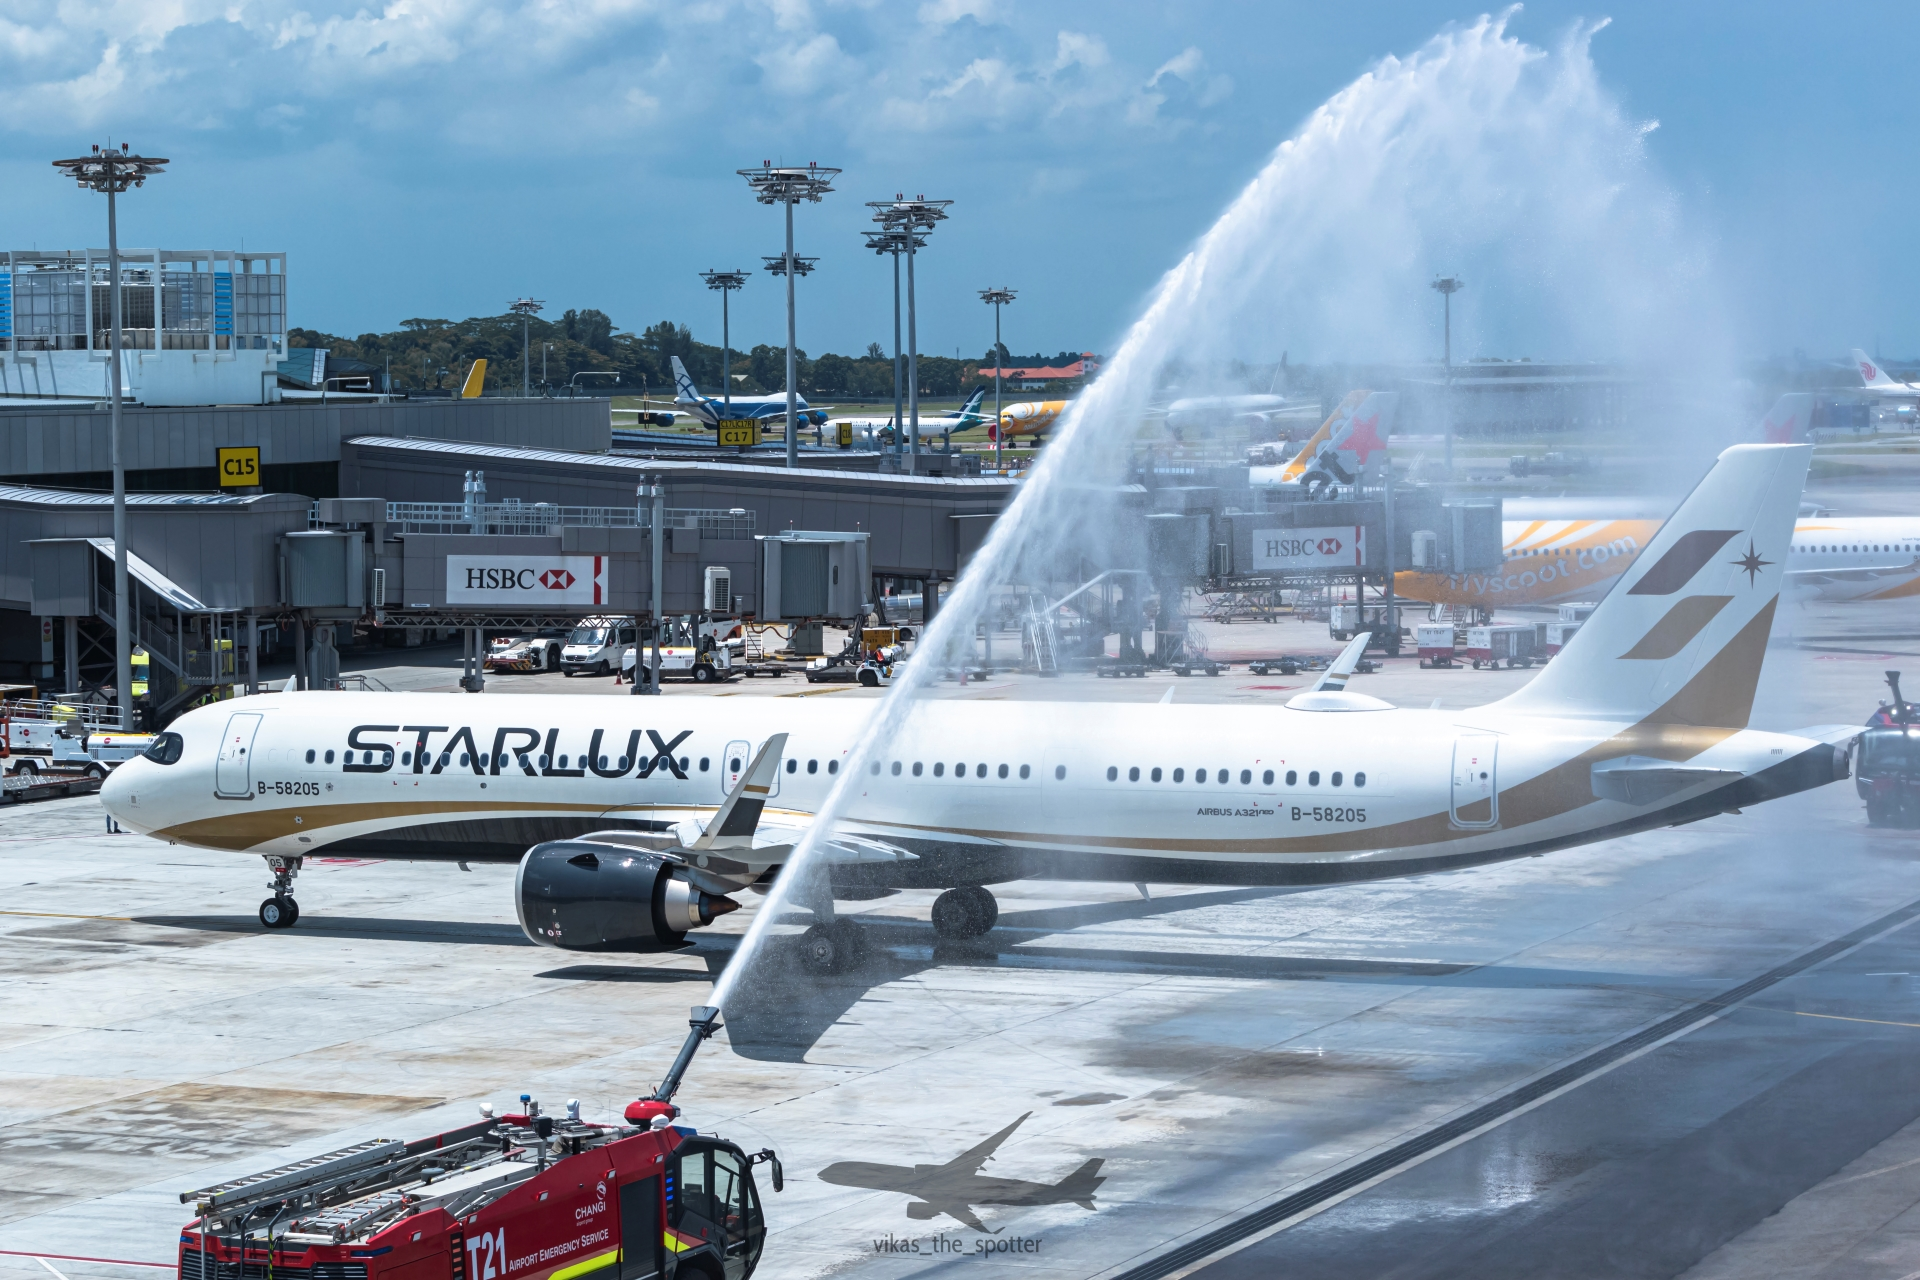 Photo of B-58205 - Starlux Airlines Airbus A321NEO at SIN